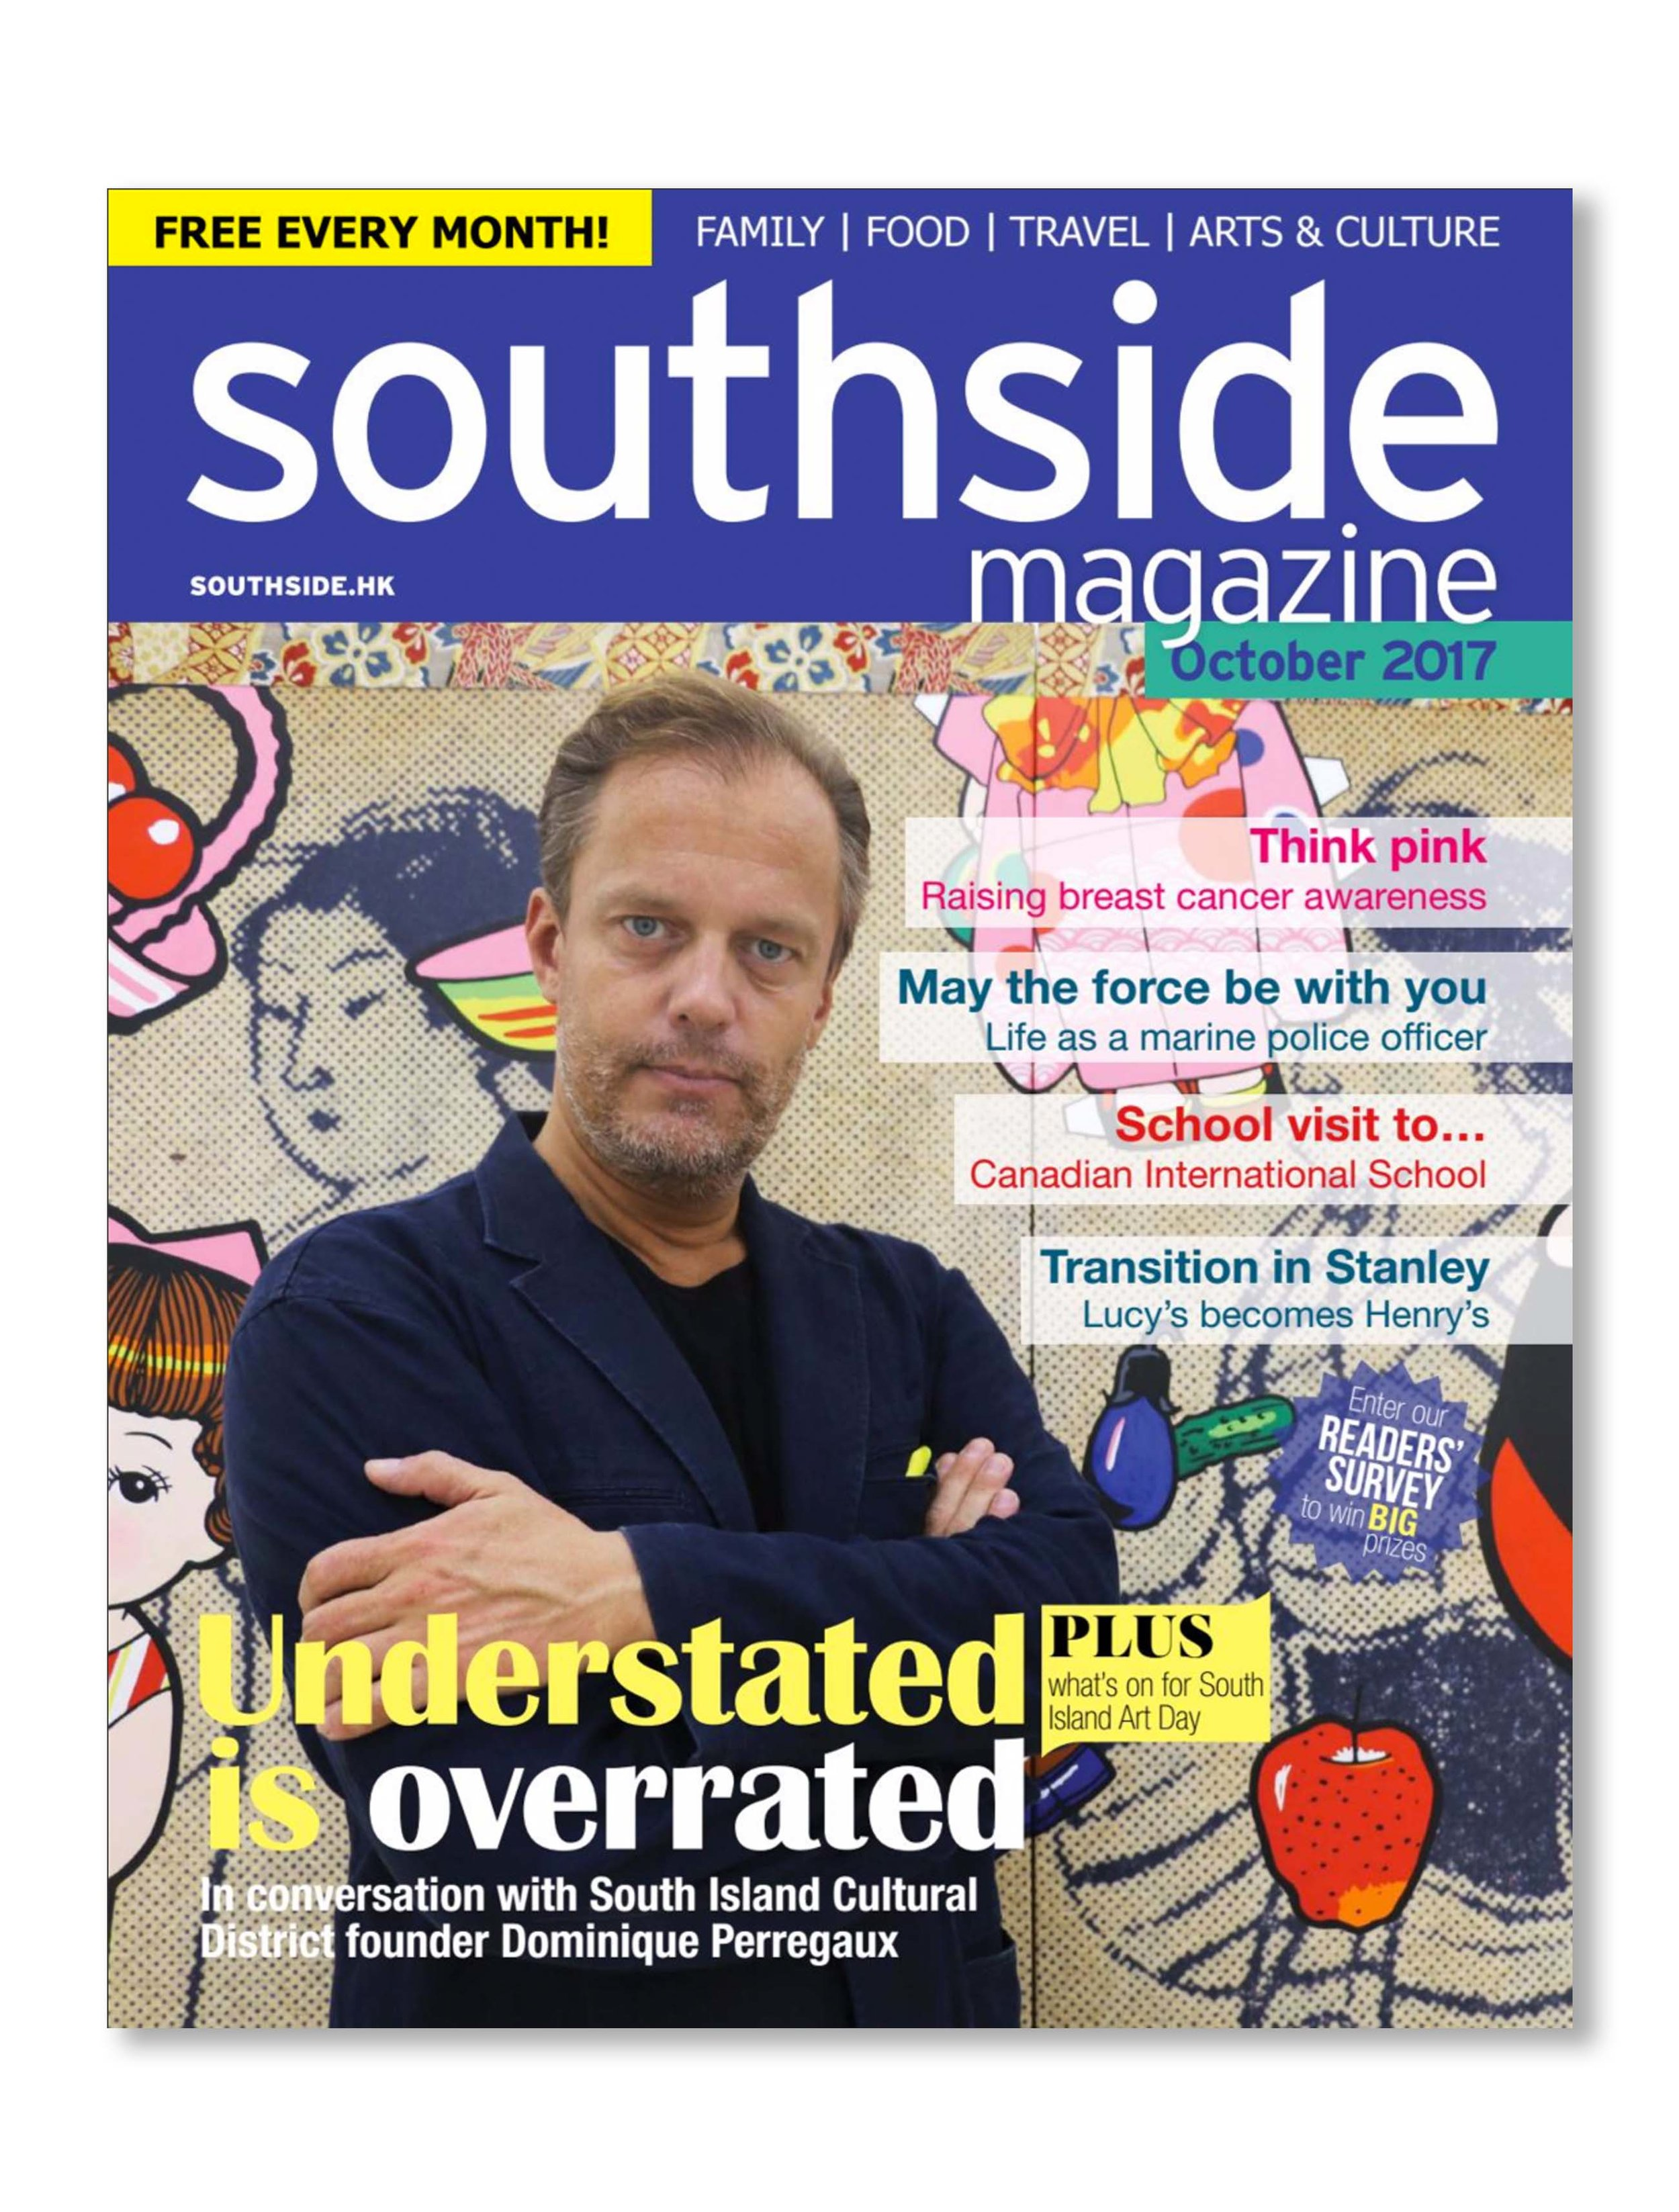 Bean Buro_Southside magazine_Oct17_disappearing corridor_cover.jpg